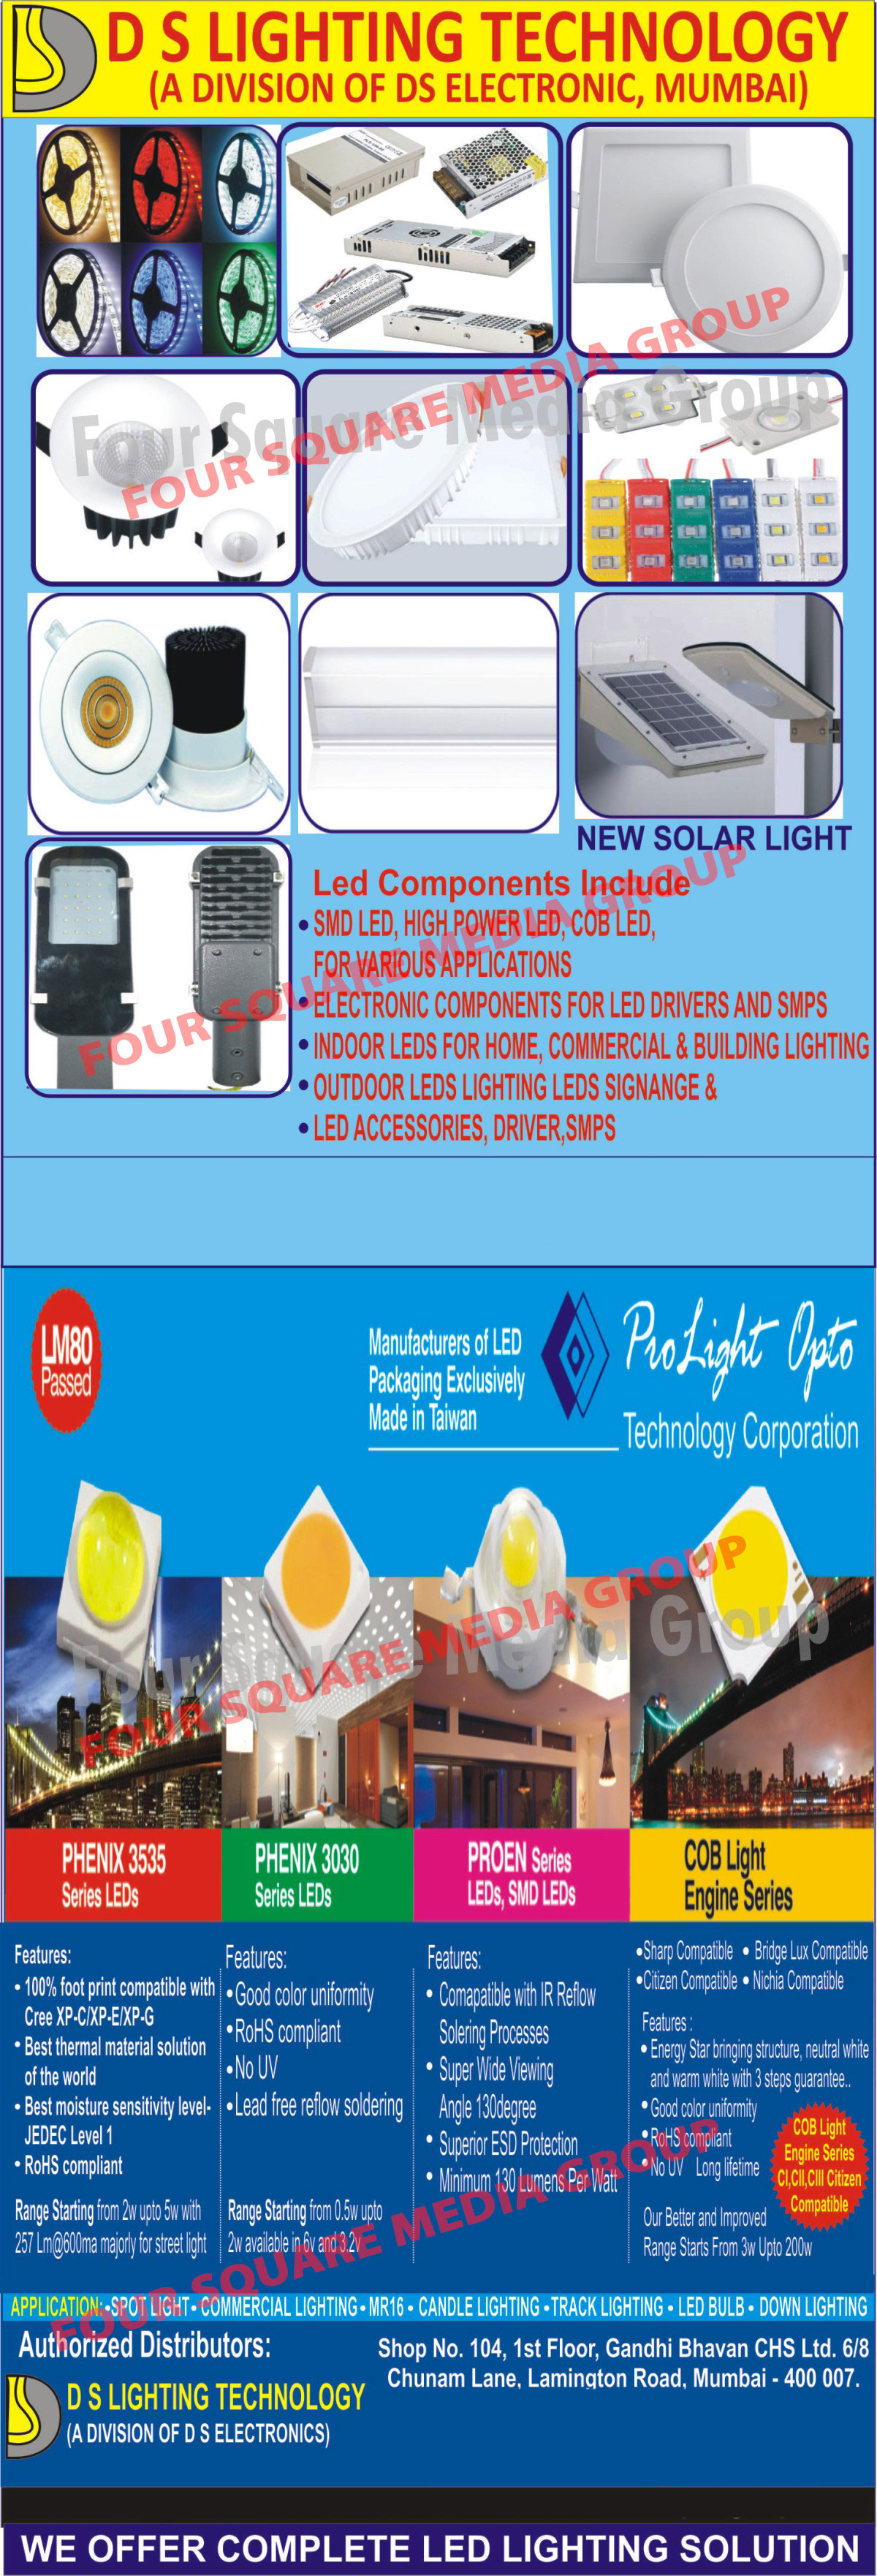 Led Components, SMD LEDs, High Power LEDs, COB LEDs, Led Driver Electronic Components, SMPS Electronic Components, Led Signages, Led Accessories, Led Drivers, Led SMPS, Led Lights, Led Outdoor Lights, Led Indoor Lights, Power Supplies, Flexible Strips, Modules, Led Strips, Led Modules